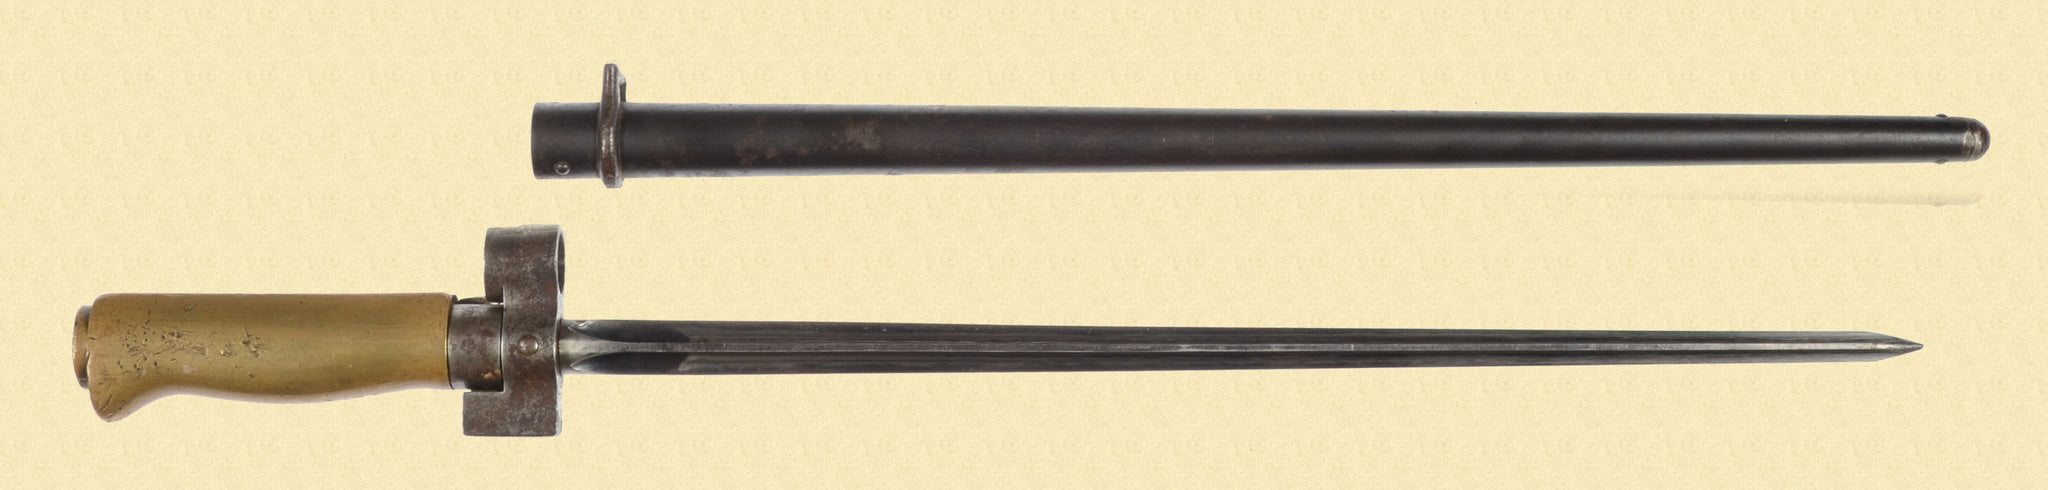 FRENCH M1886/91/16/35 BAYONET